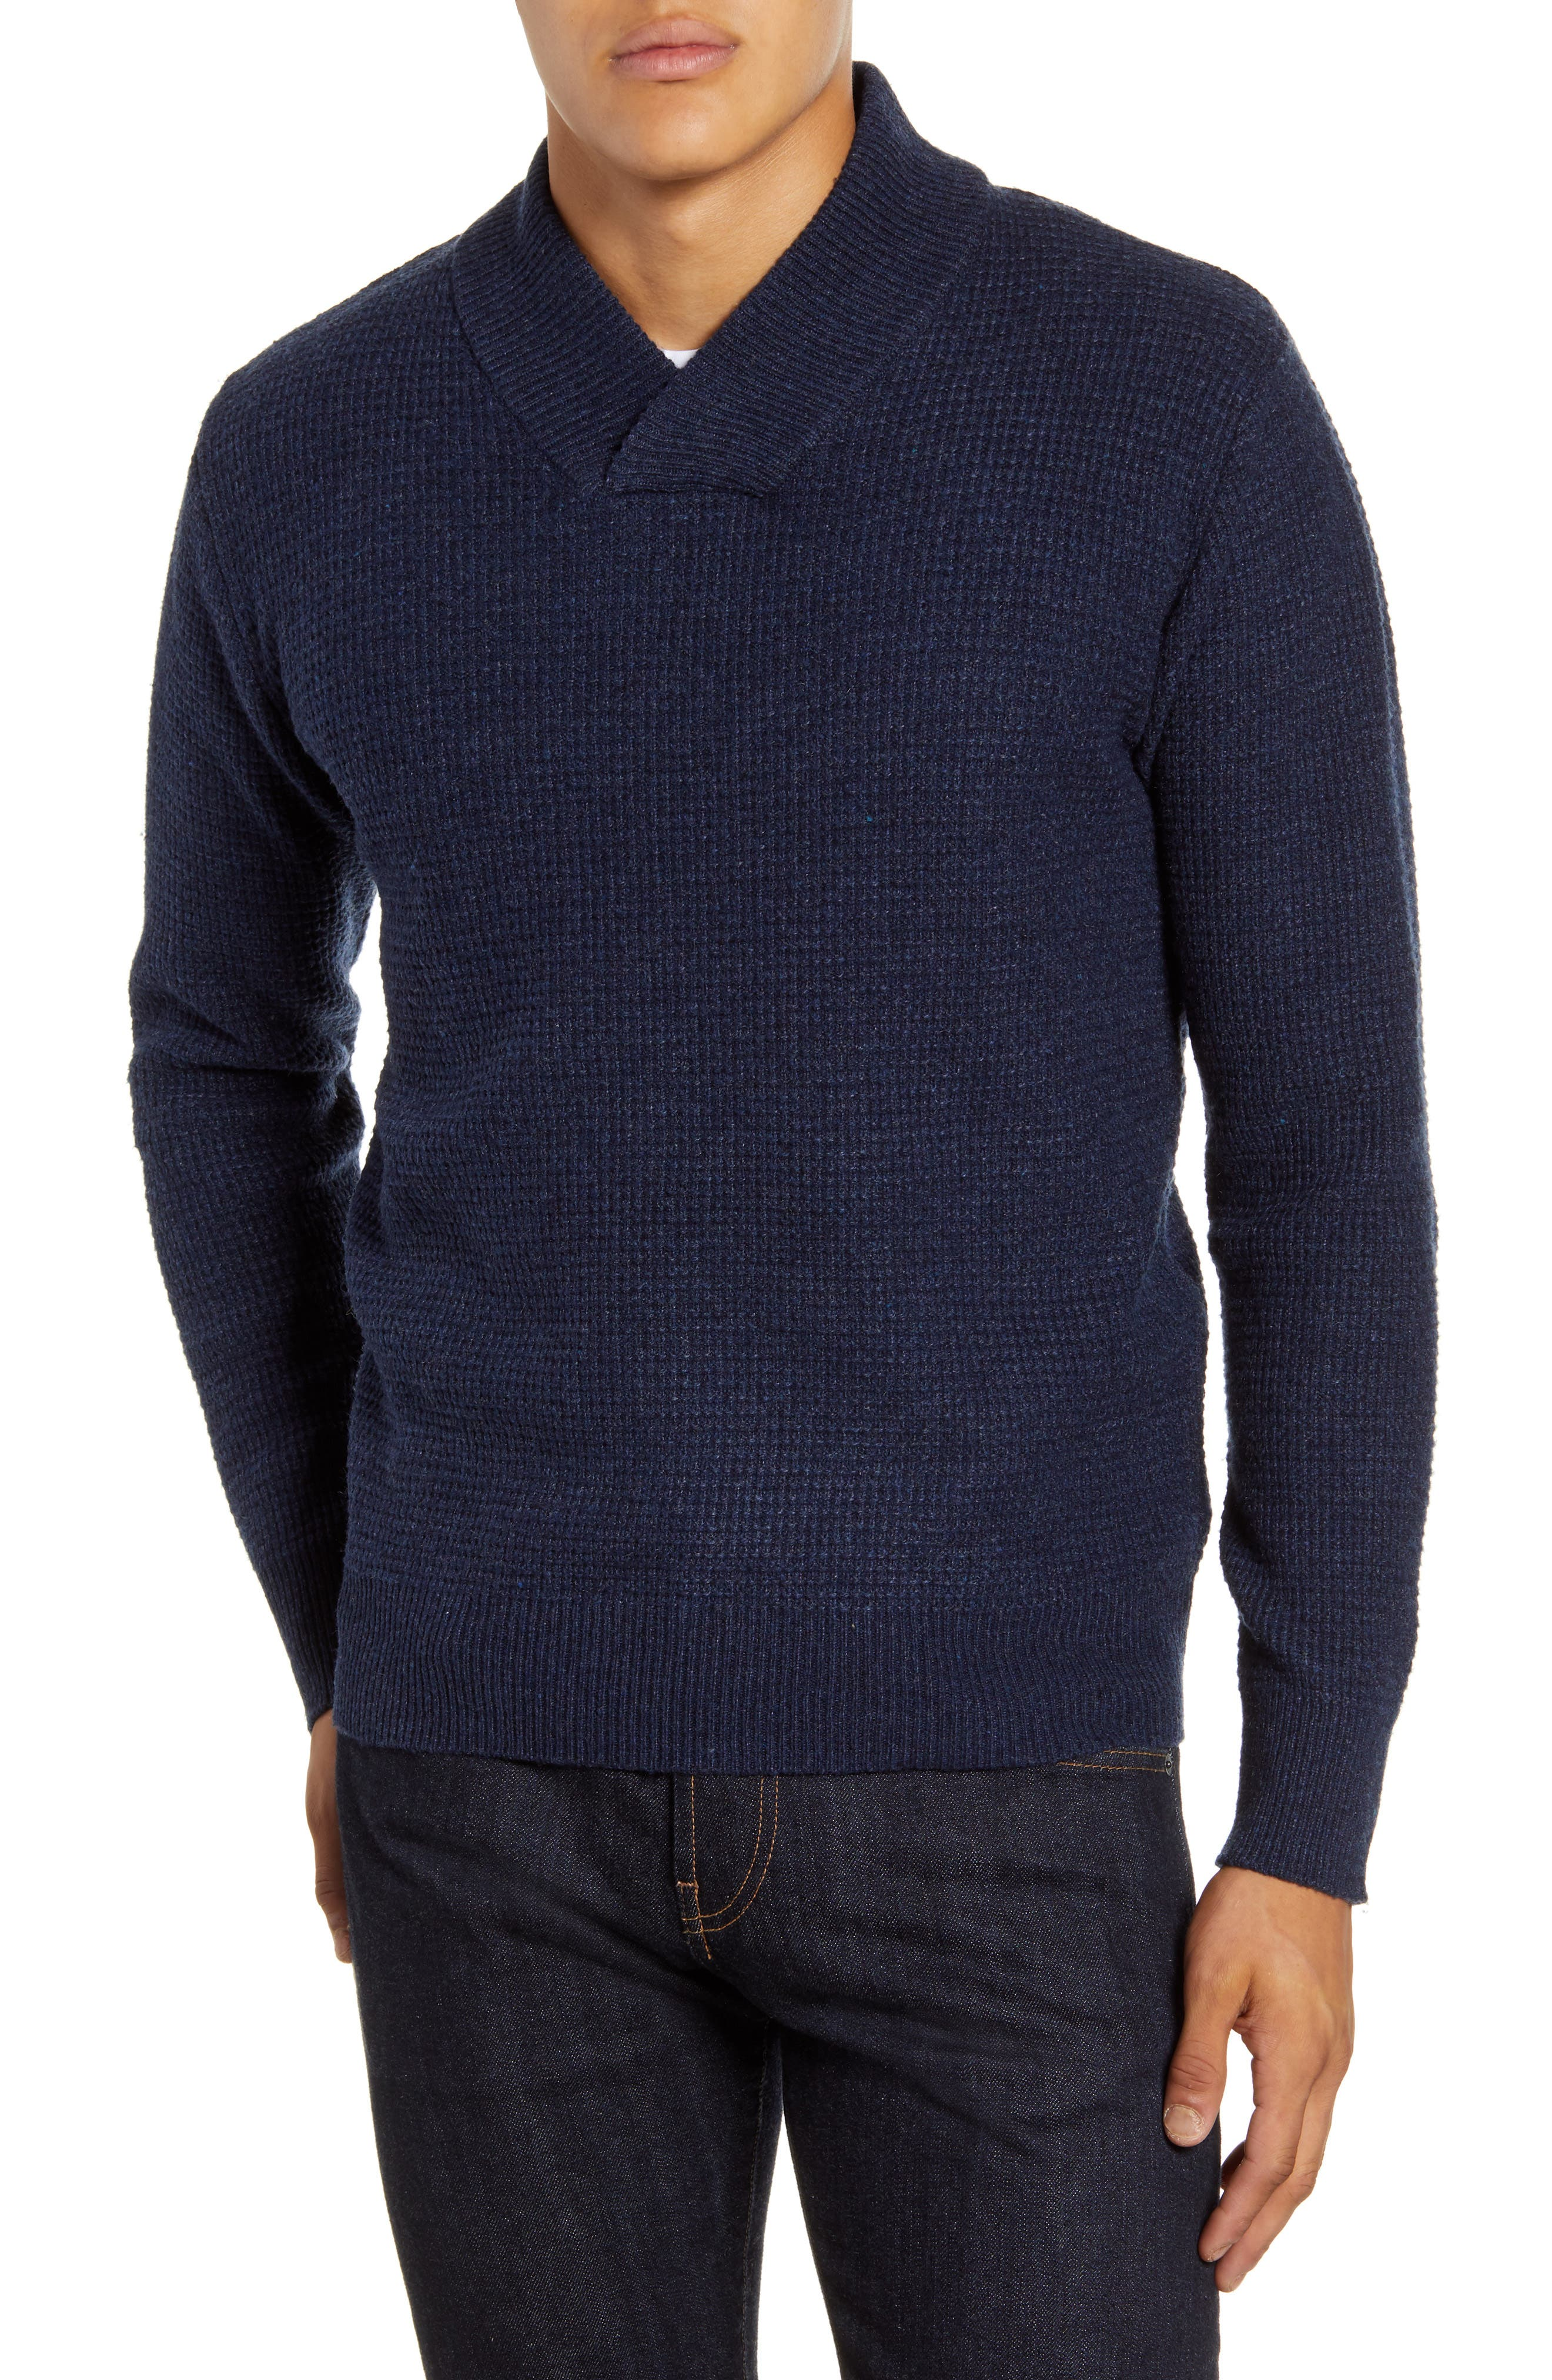 Men's Vintage Sweaters History Mens Schott Nyc Waffle Knit Thermal Wool Blend Pullover Size Medium - Blue $80.00 AT vintagedancer.com